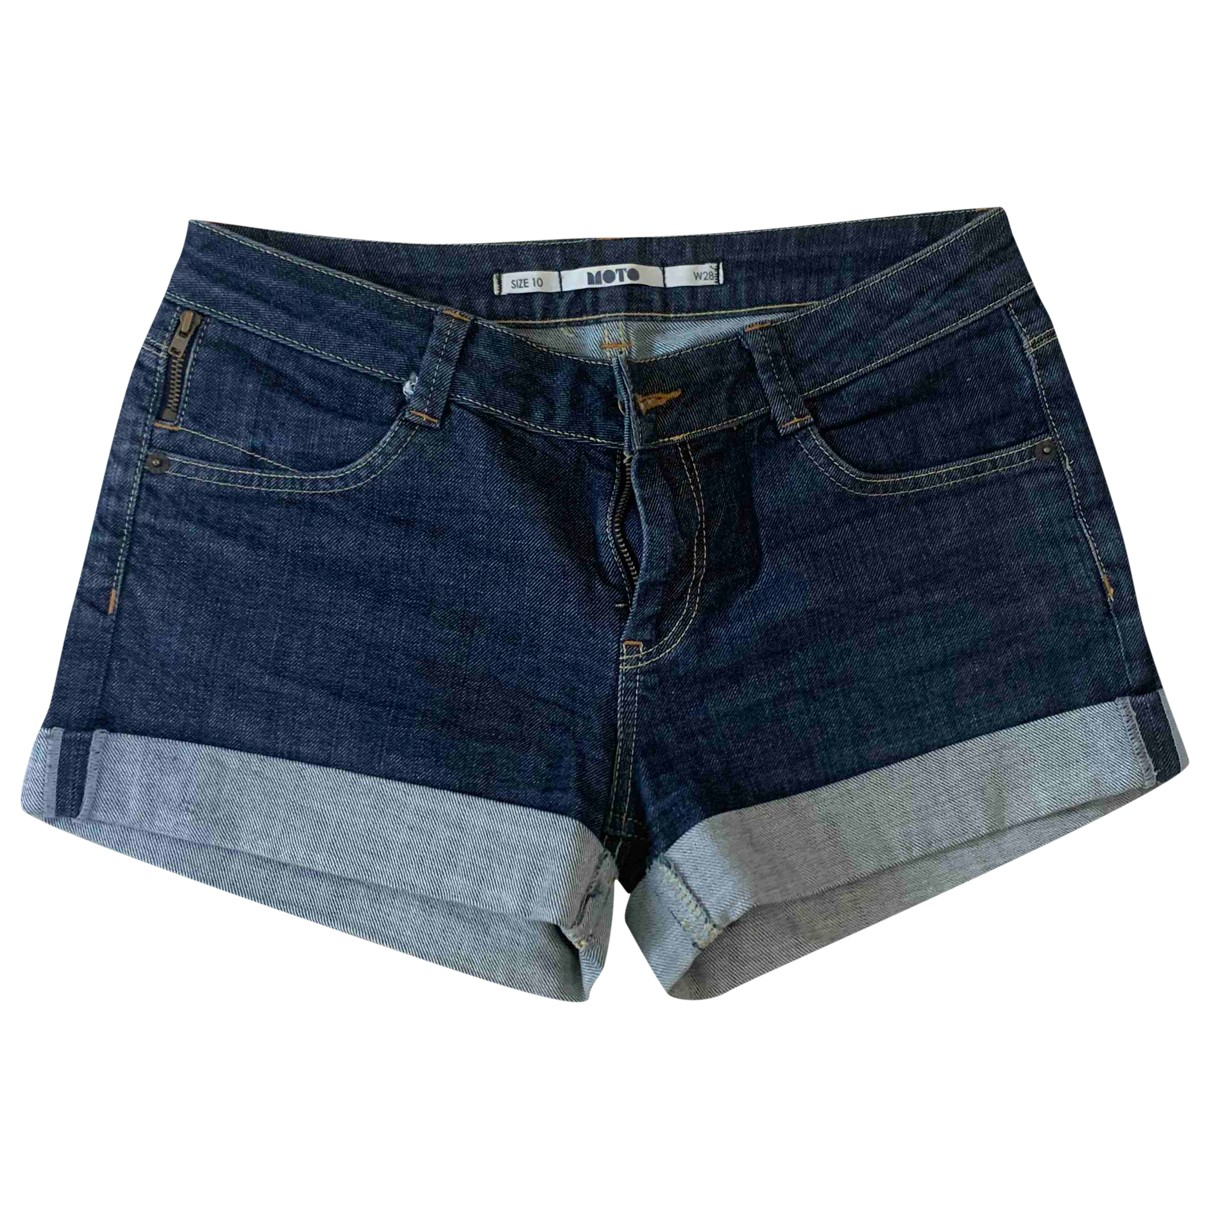 tophop \N Blue Denim - Jeans Shorts for Women 10 UK